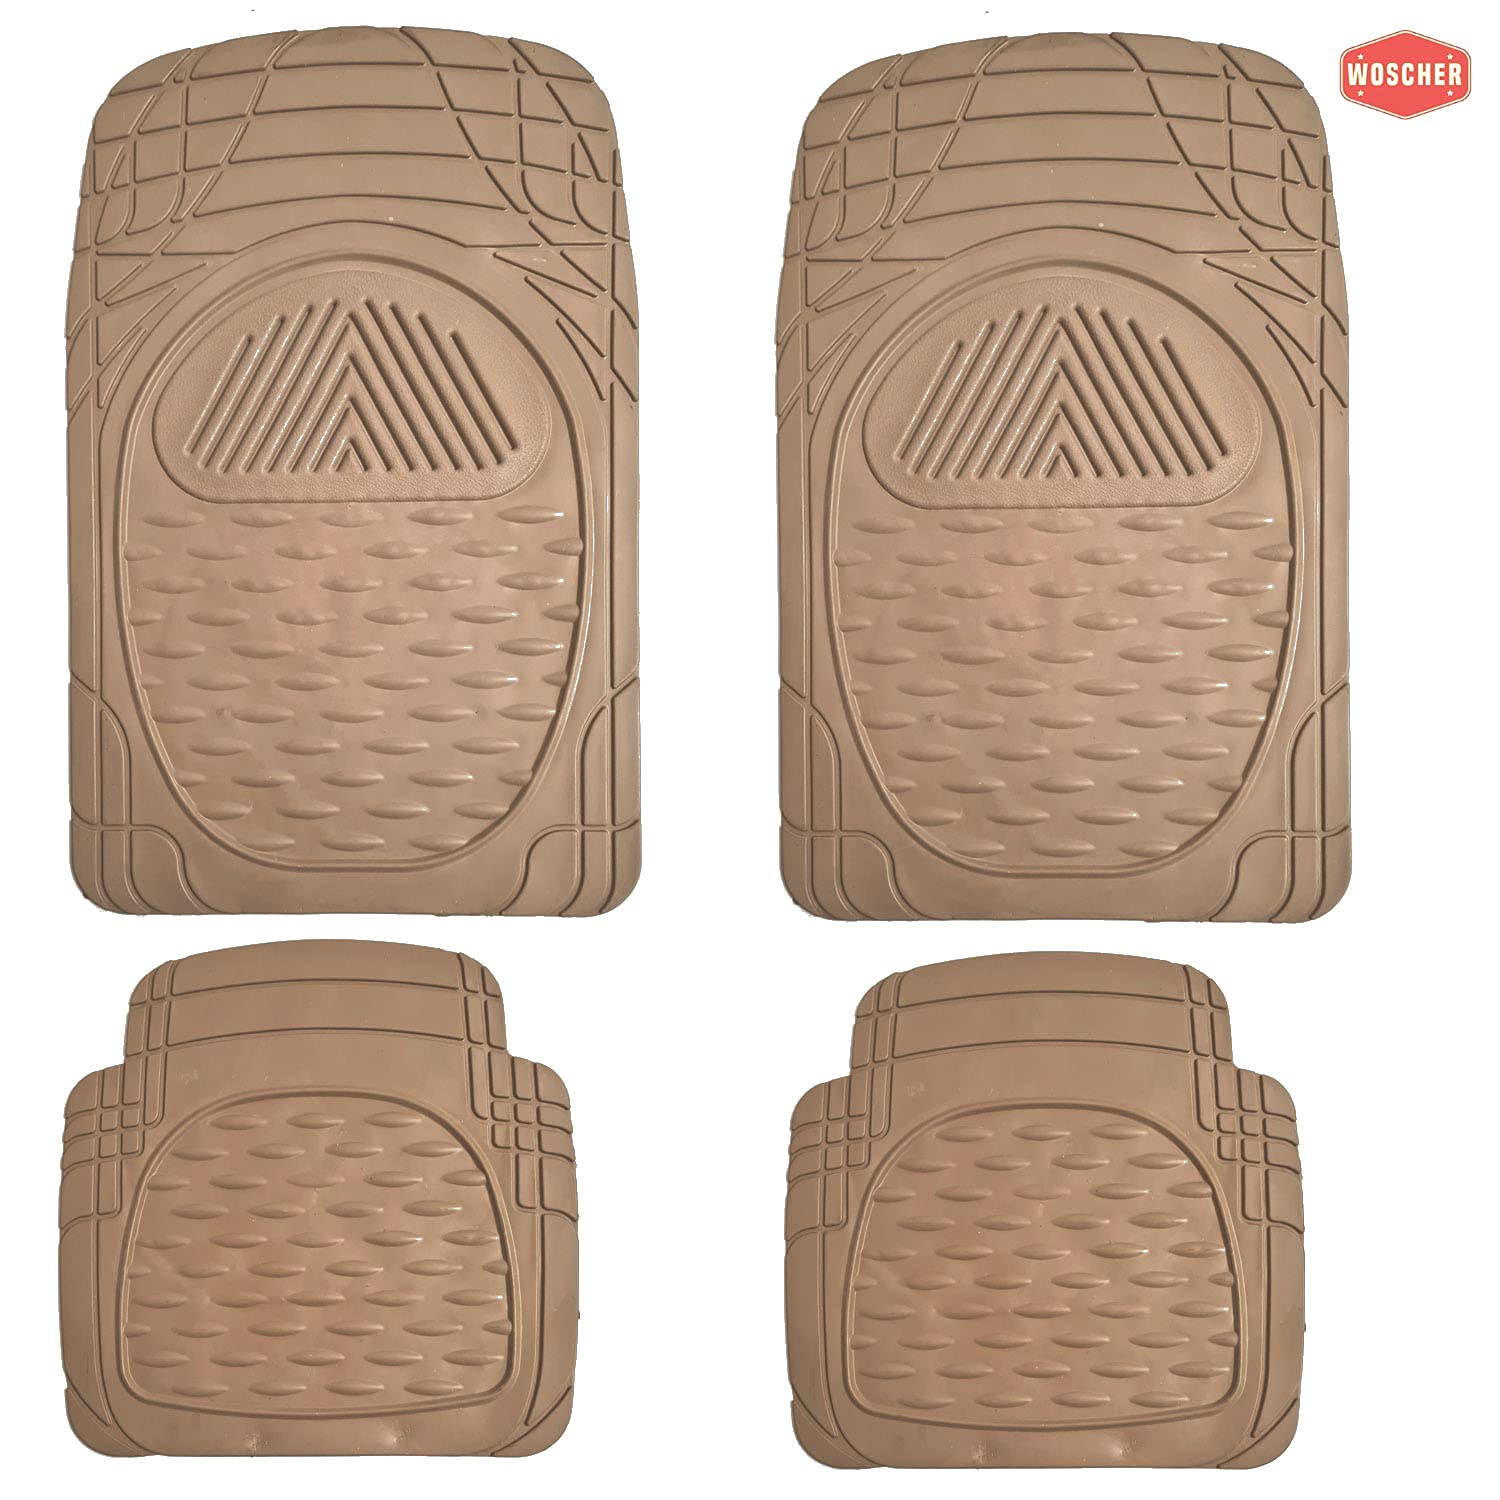 woscher-6204-flextough-all-season-odorless-rubber-floor-car-mat-for-car-suv-universal-self-cut-to-perfectly-fit-beige